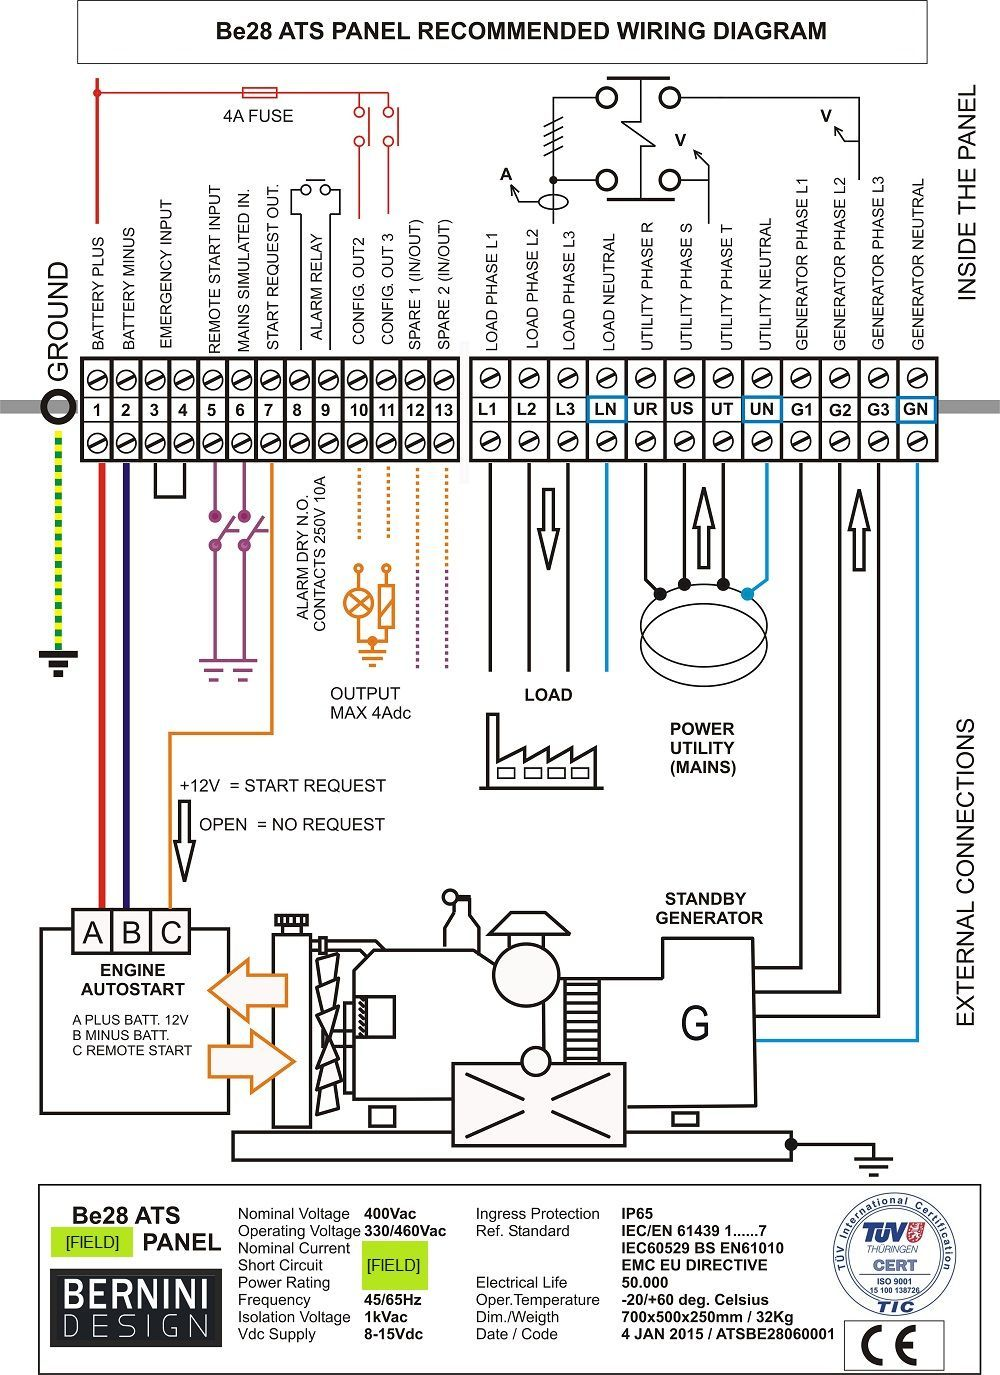 Transfer Switch Wiring Diagrams : transfer, switch, wiring, diagrams, Generac, Automatic, Transfer, Switch, Wiring, Diagram, Generator, Extraordinary, Diagrams, Switch,, House